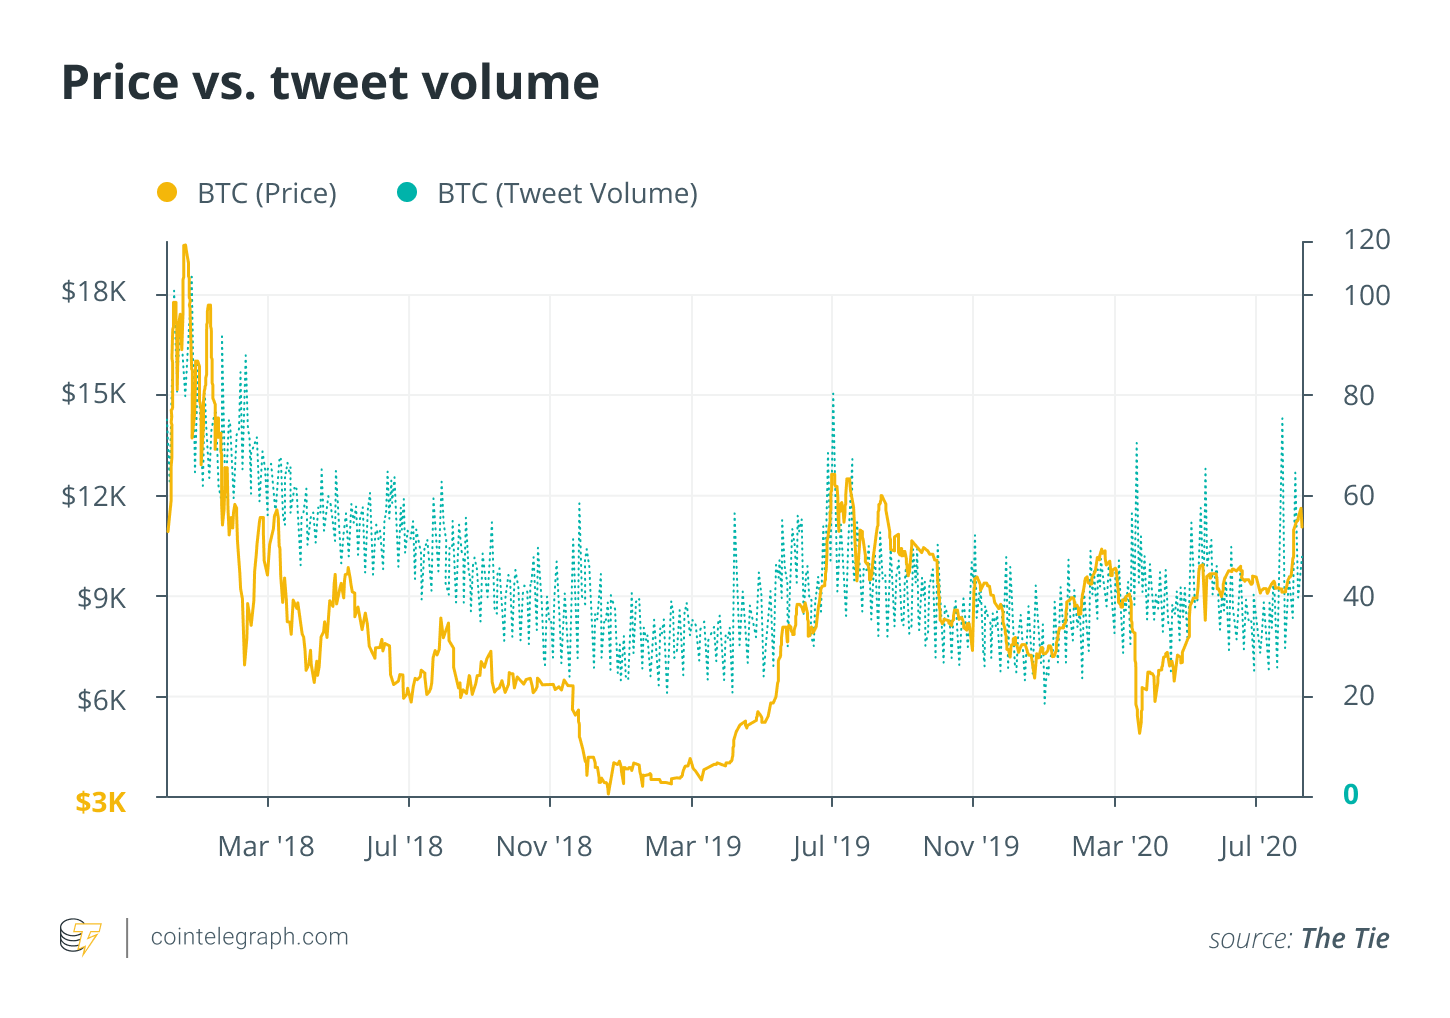 Price vs. tweet volume